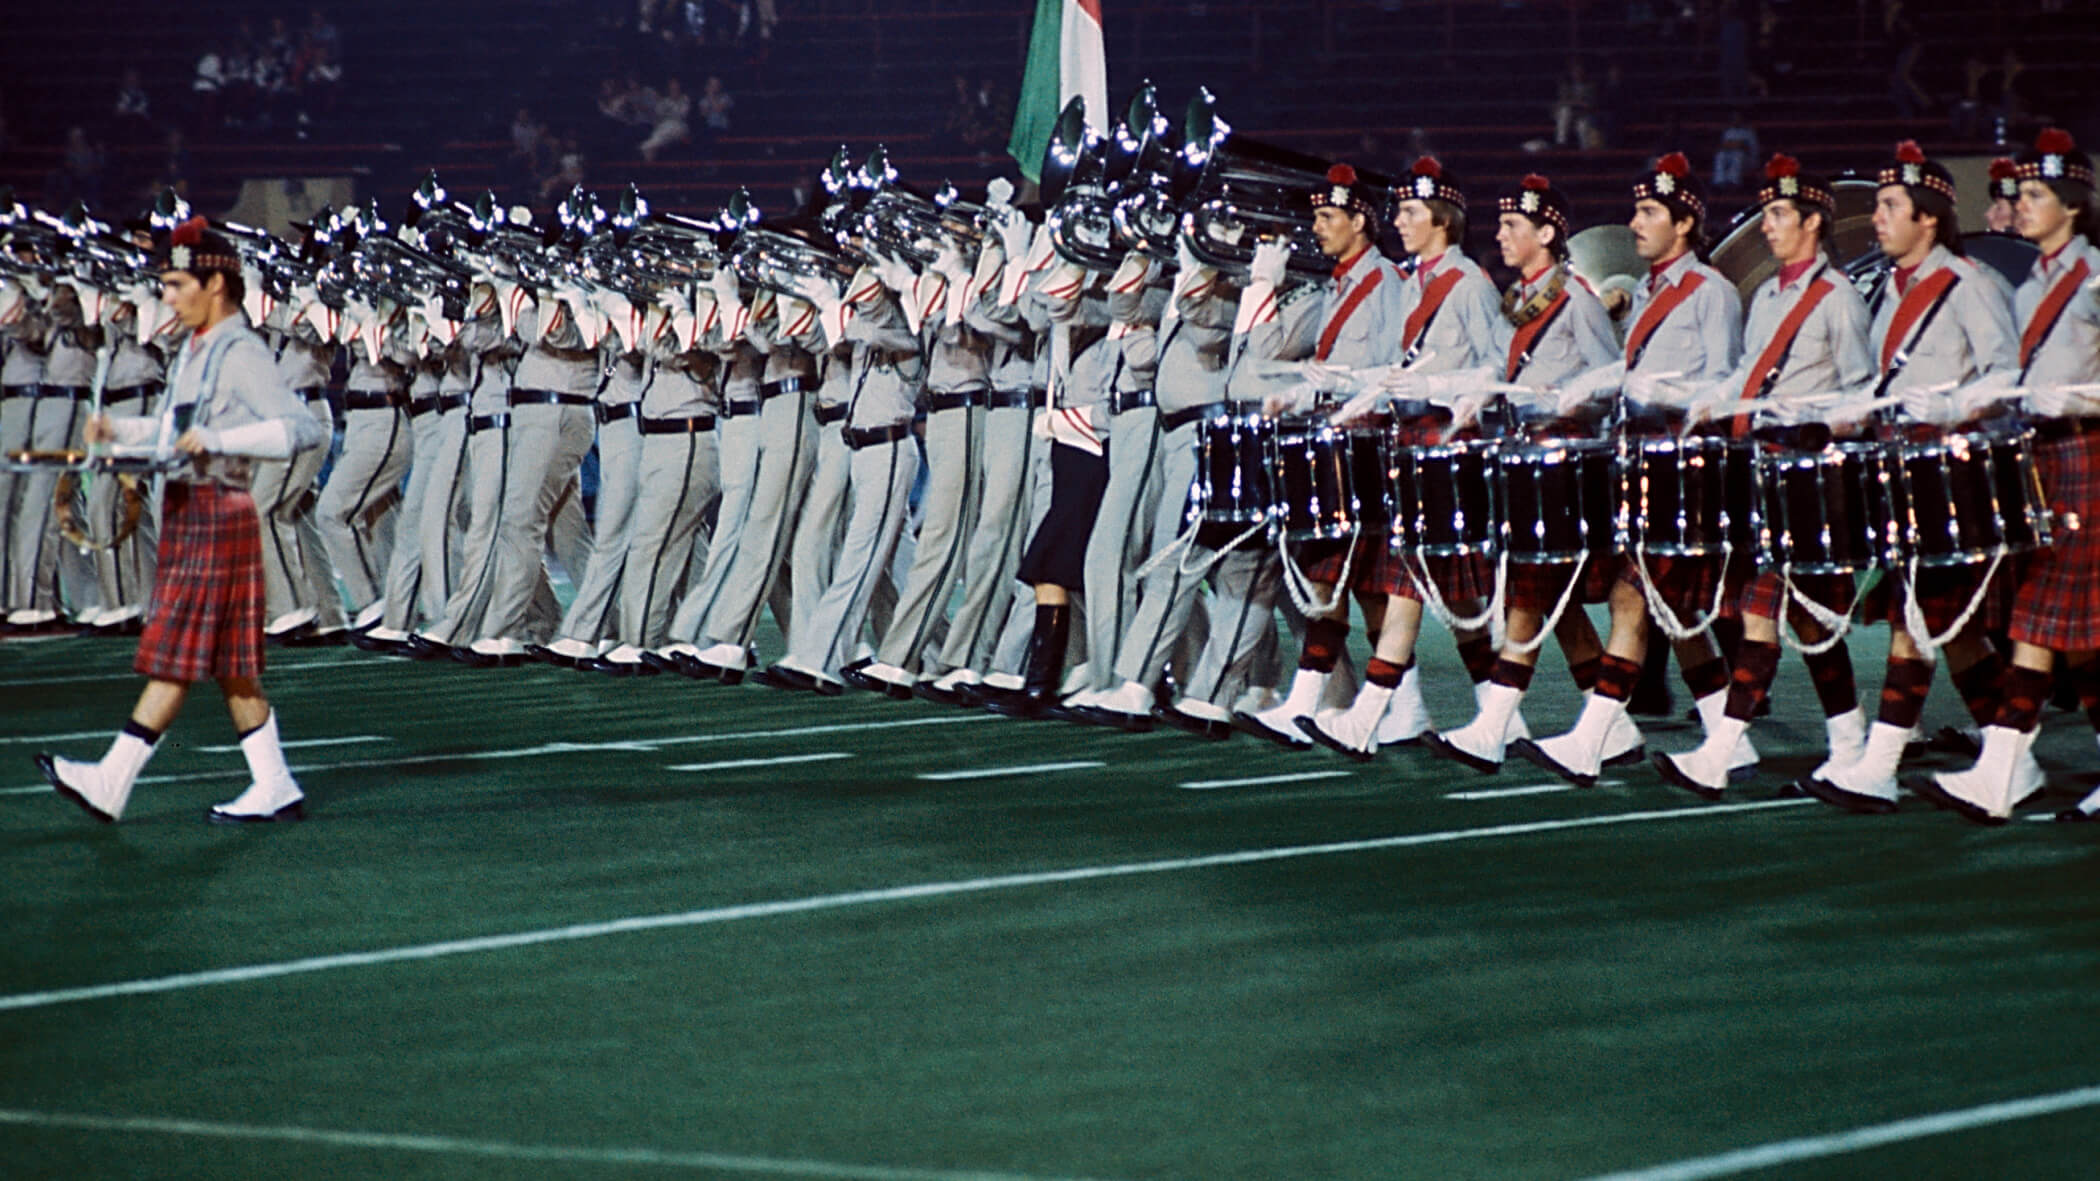 """The making of a drum corps icon: 27th Lancers and """"Danny Boy"""""""